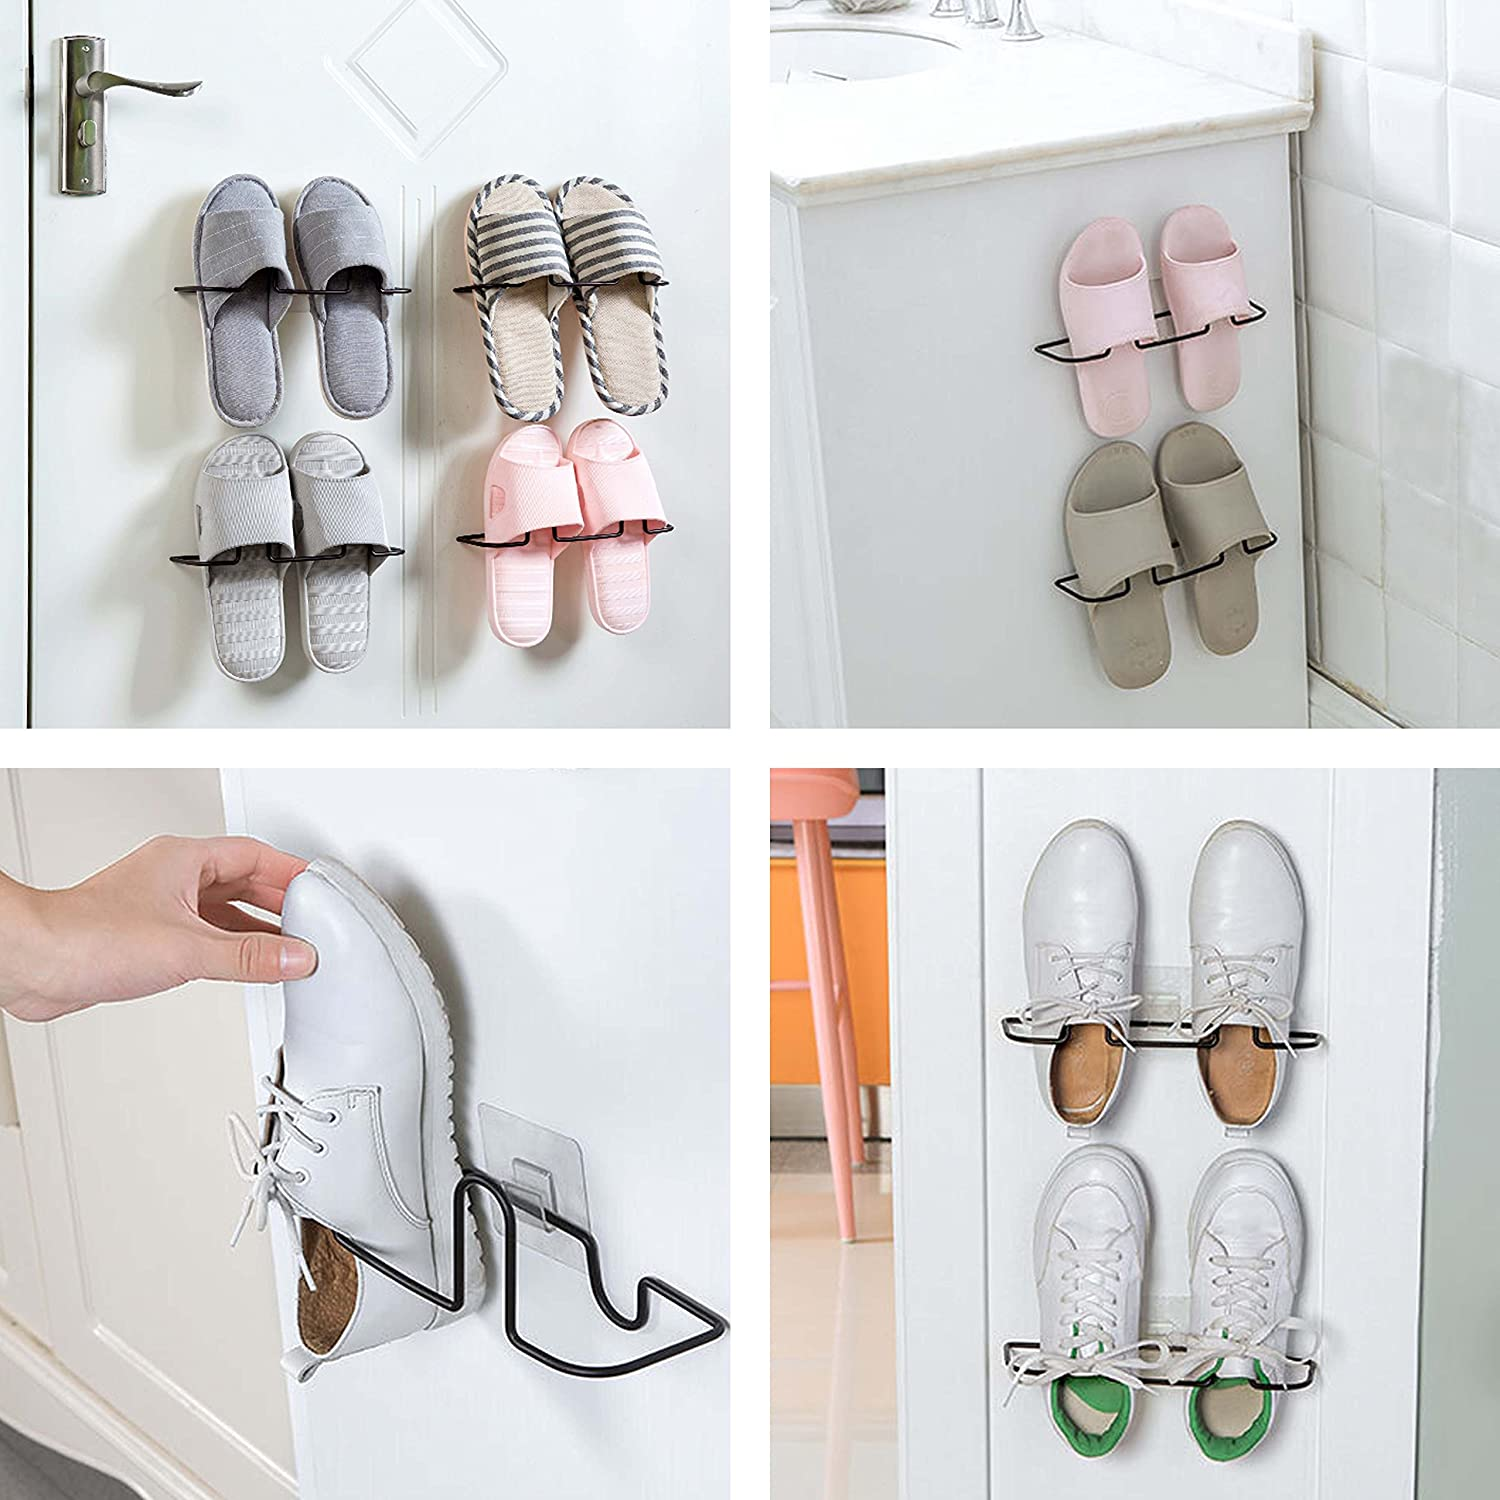 Easy Eco Life Wall Mount Shoe Rack Slipper Shelf Storage Organizer Bathroom Shower Room No Drilling No Tool,Damage Free Installation (2 Pcs / Pack) Easy & Eco Life